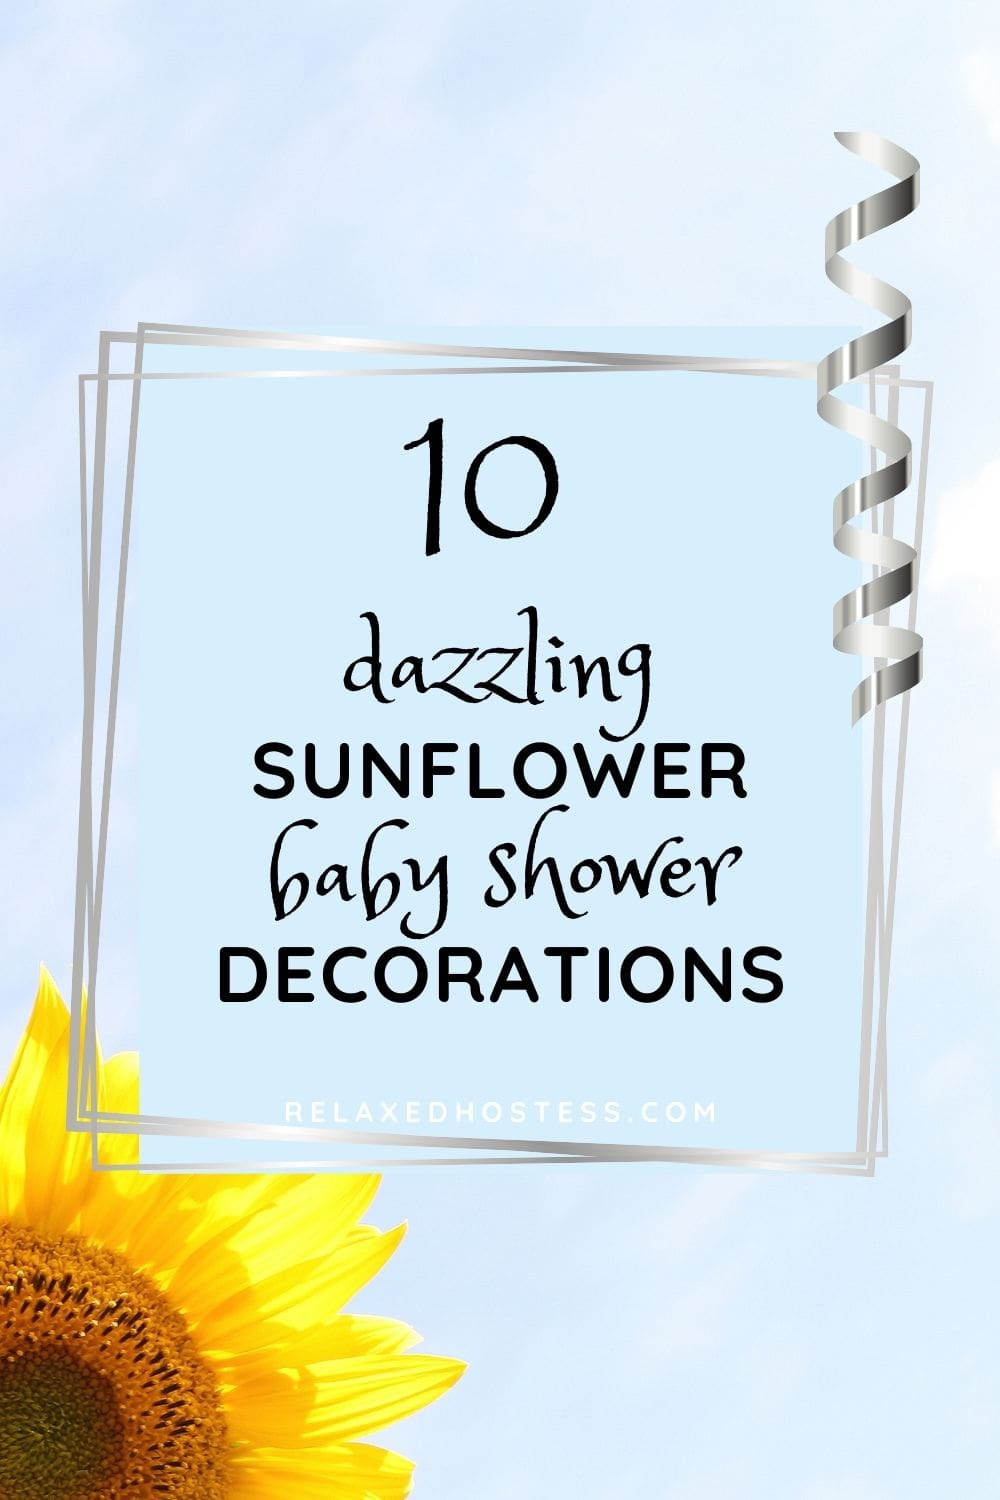 10 dazzling sunflower baby shower decorations. (blue sky, sunflower in the lower left corner, silver curling ribbon on the right, text wrapped in silver frame.)